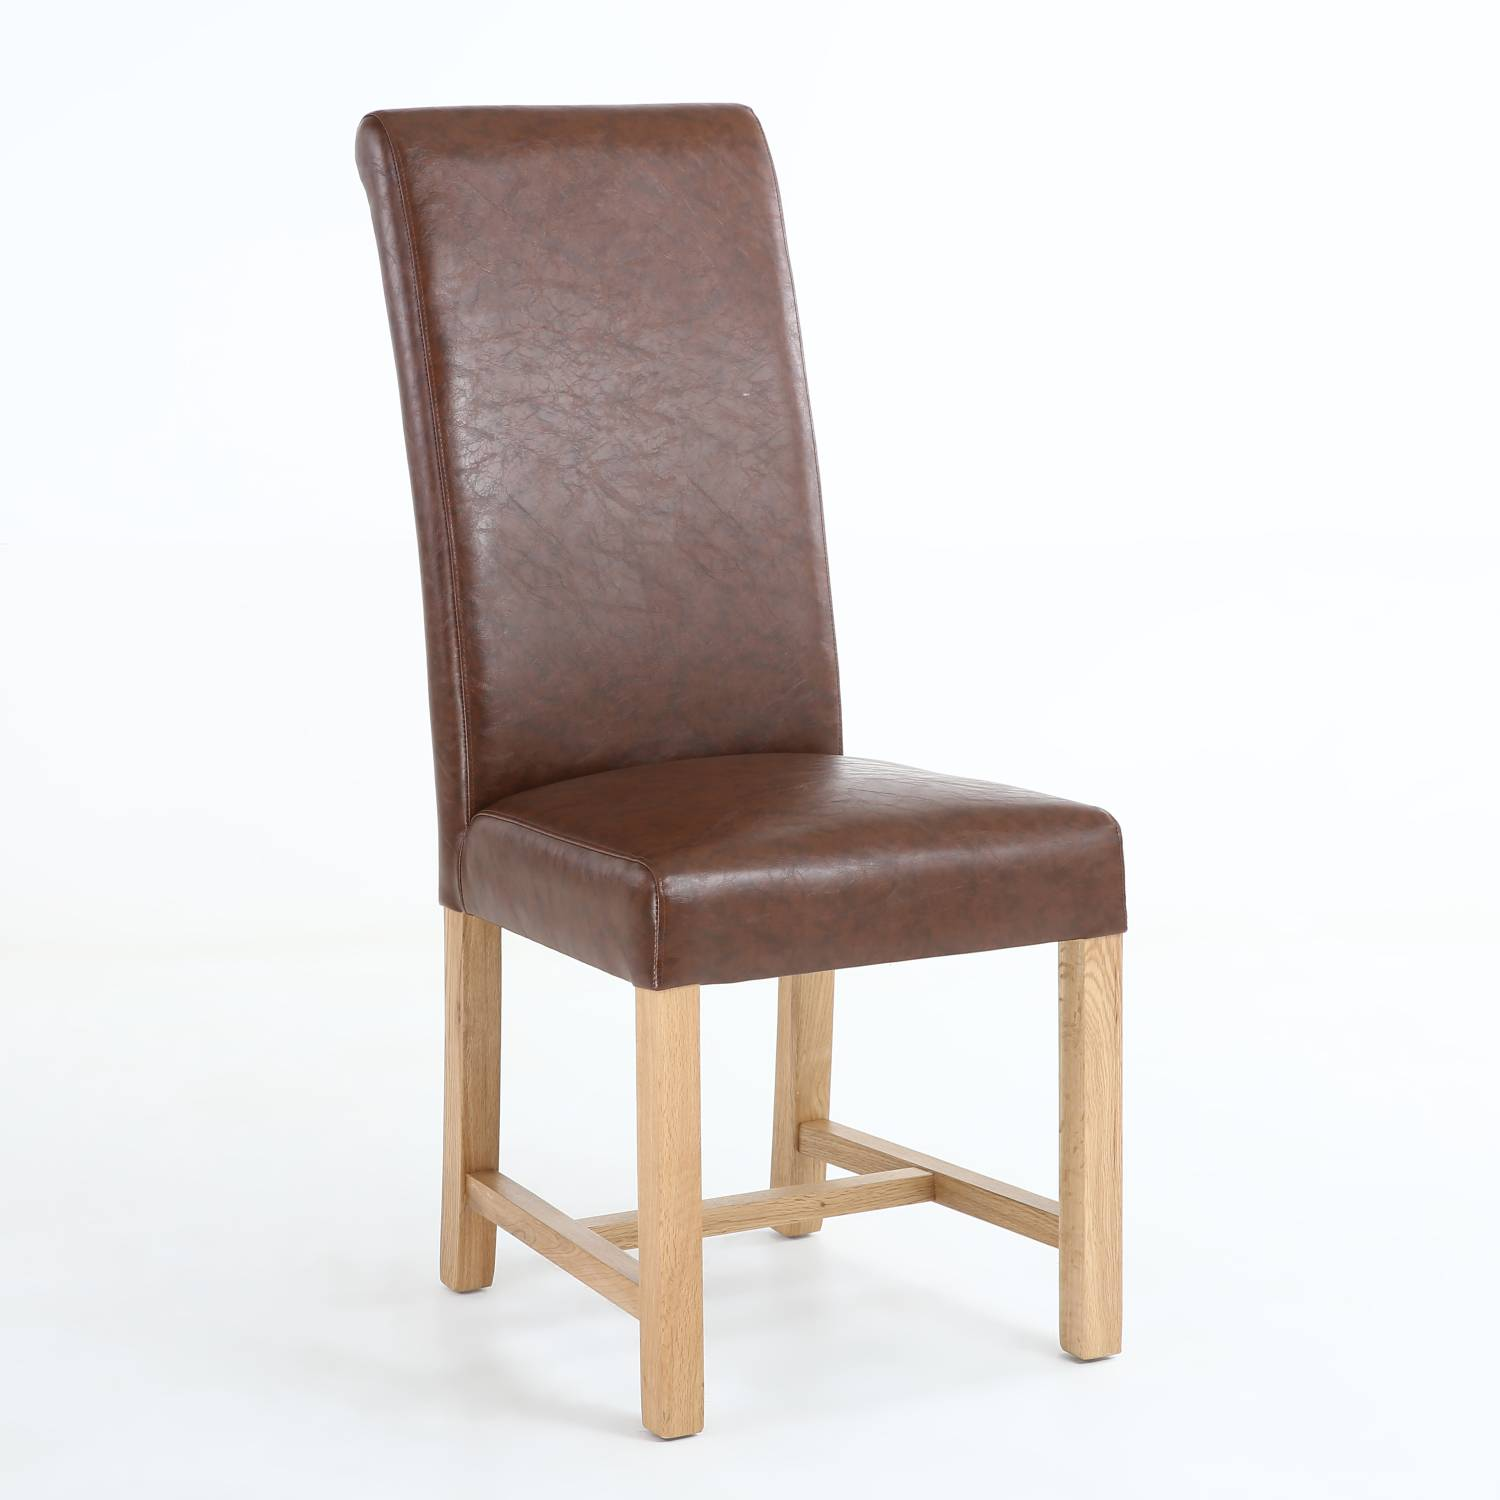 Bonded leather dining chairs shop for cheap furniture